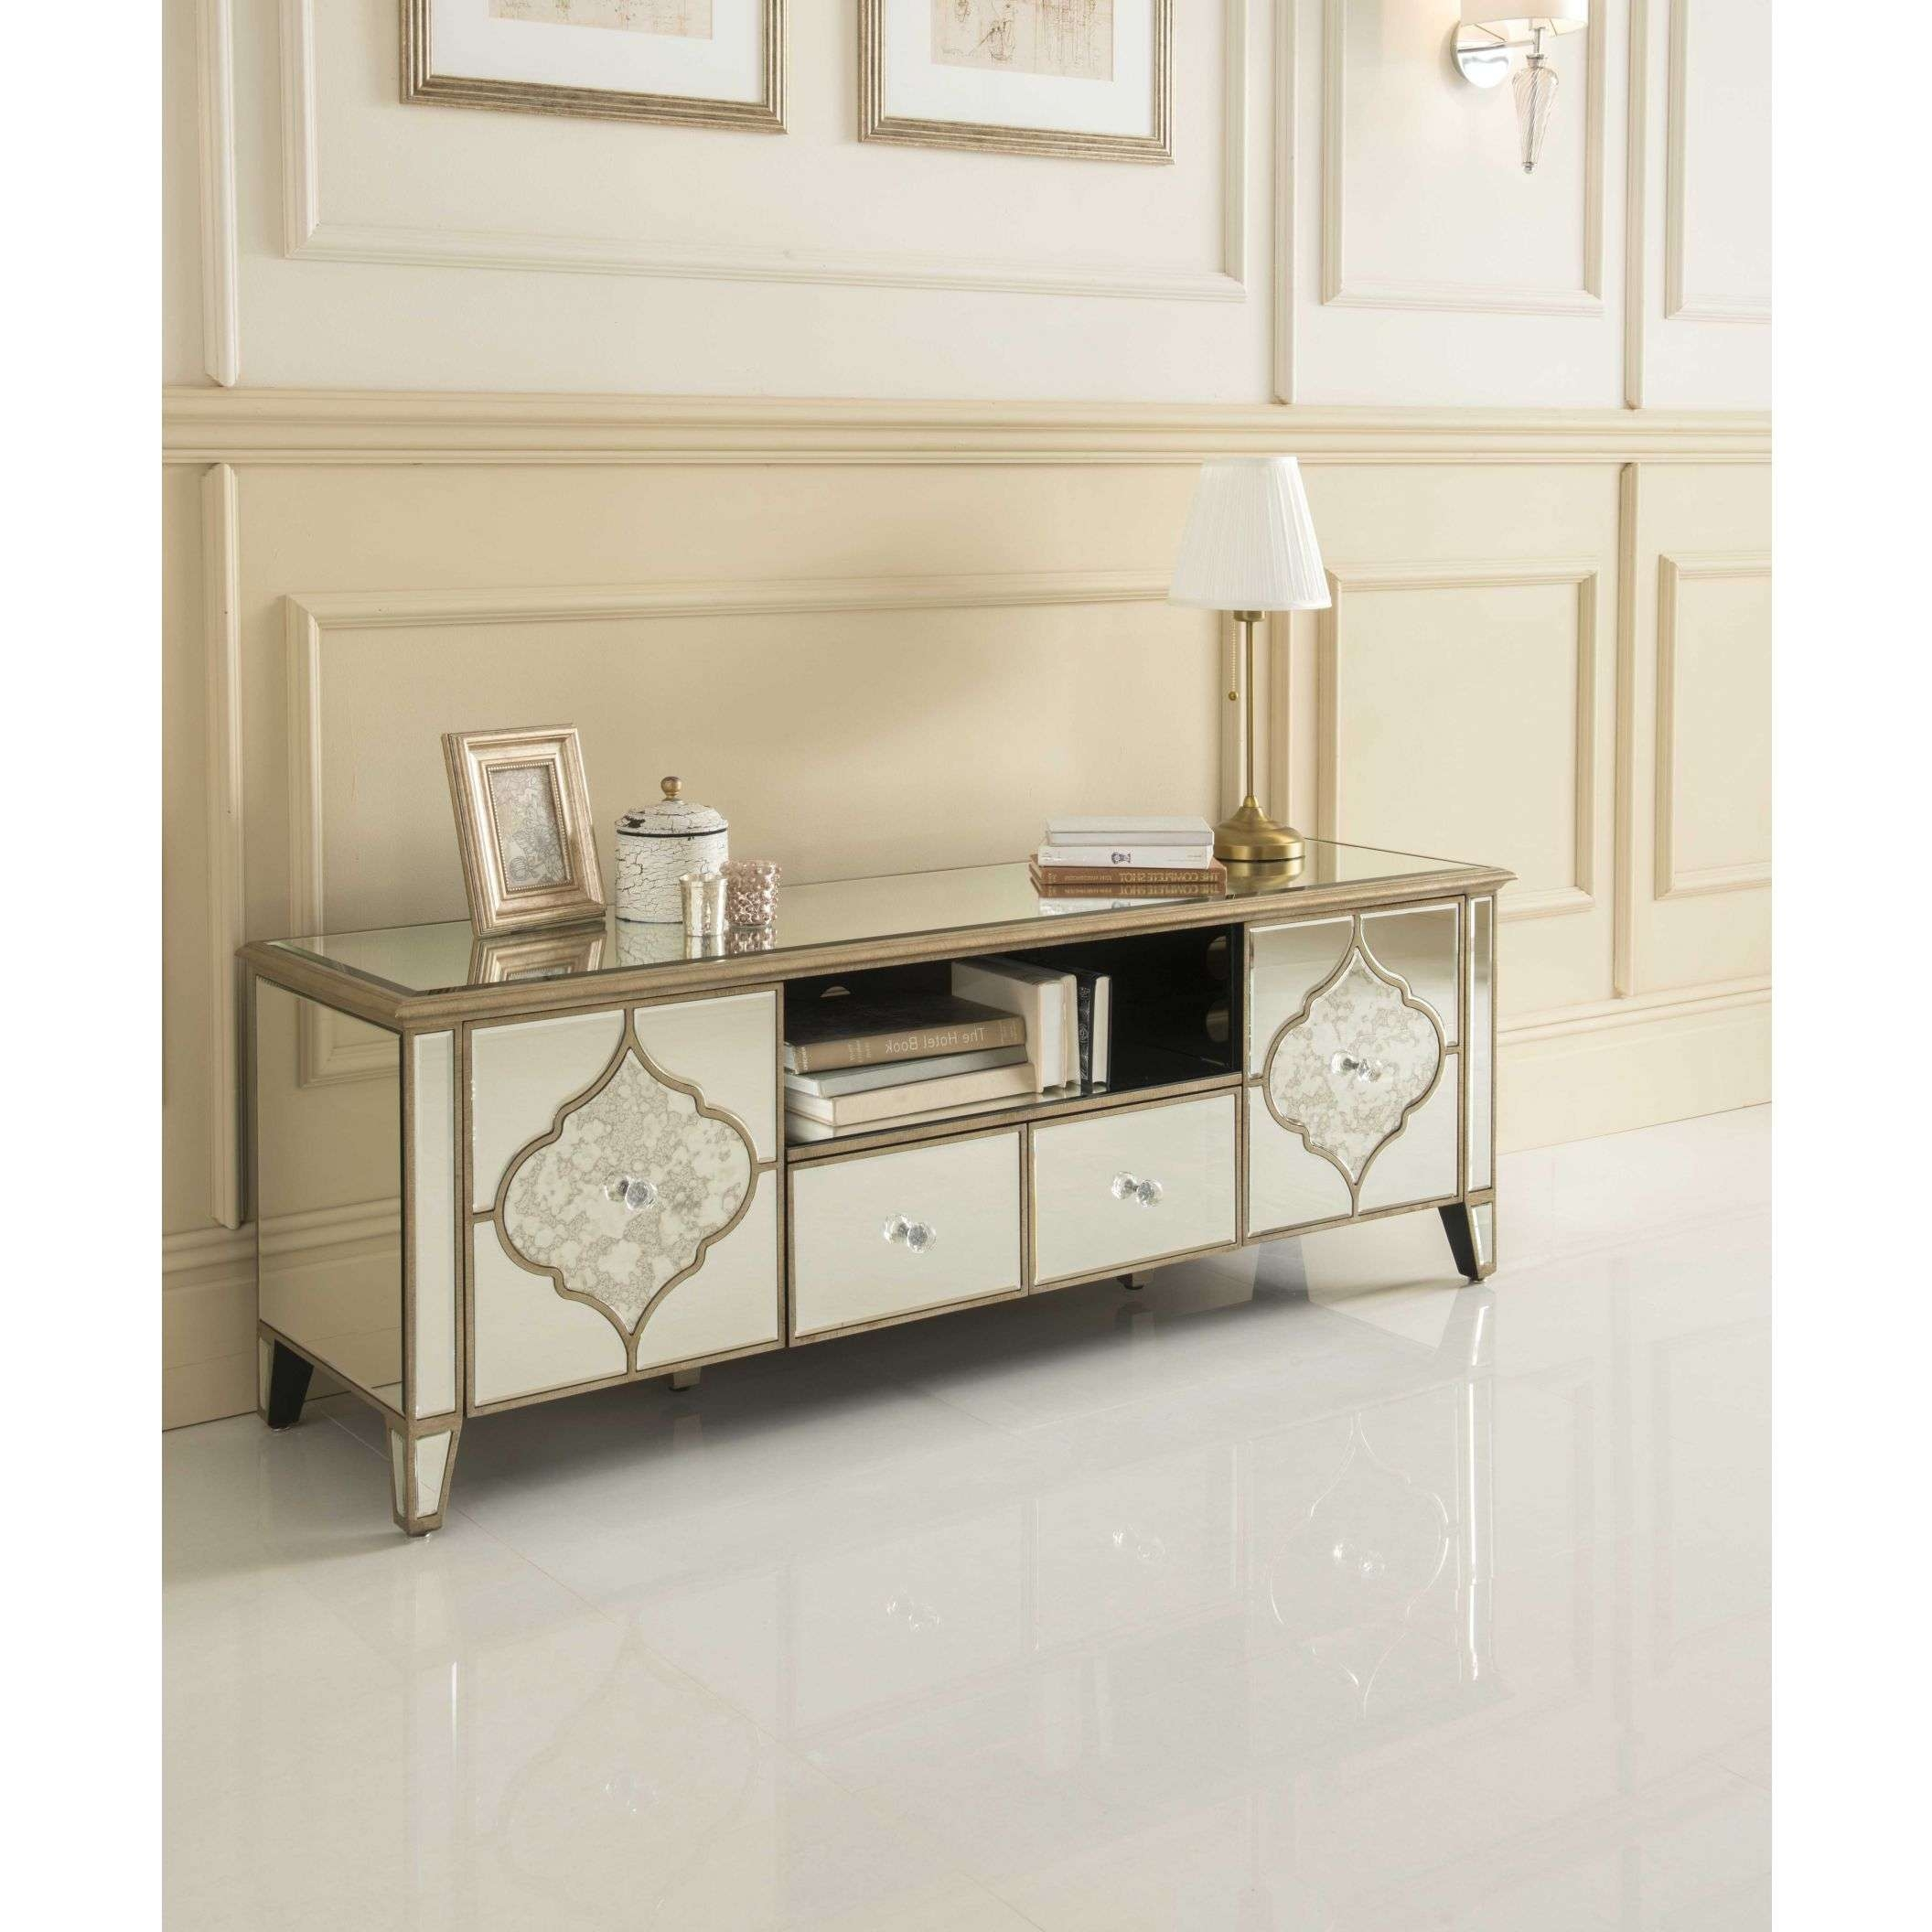 Sassari Mirrored Tv Cabinet | Glass Furniture Intended For Mirrored Tv Cabinets Furniture (View 14 of 20)